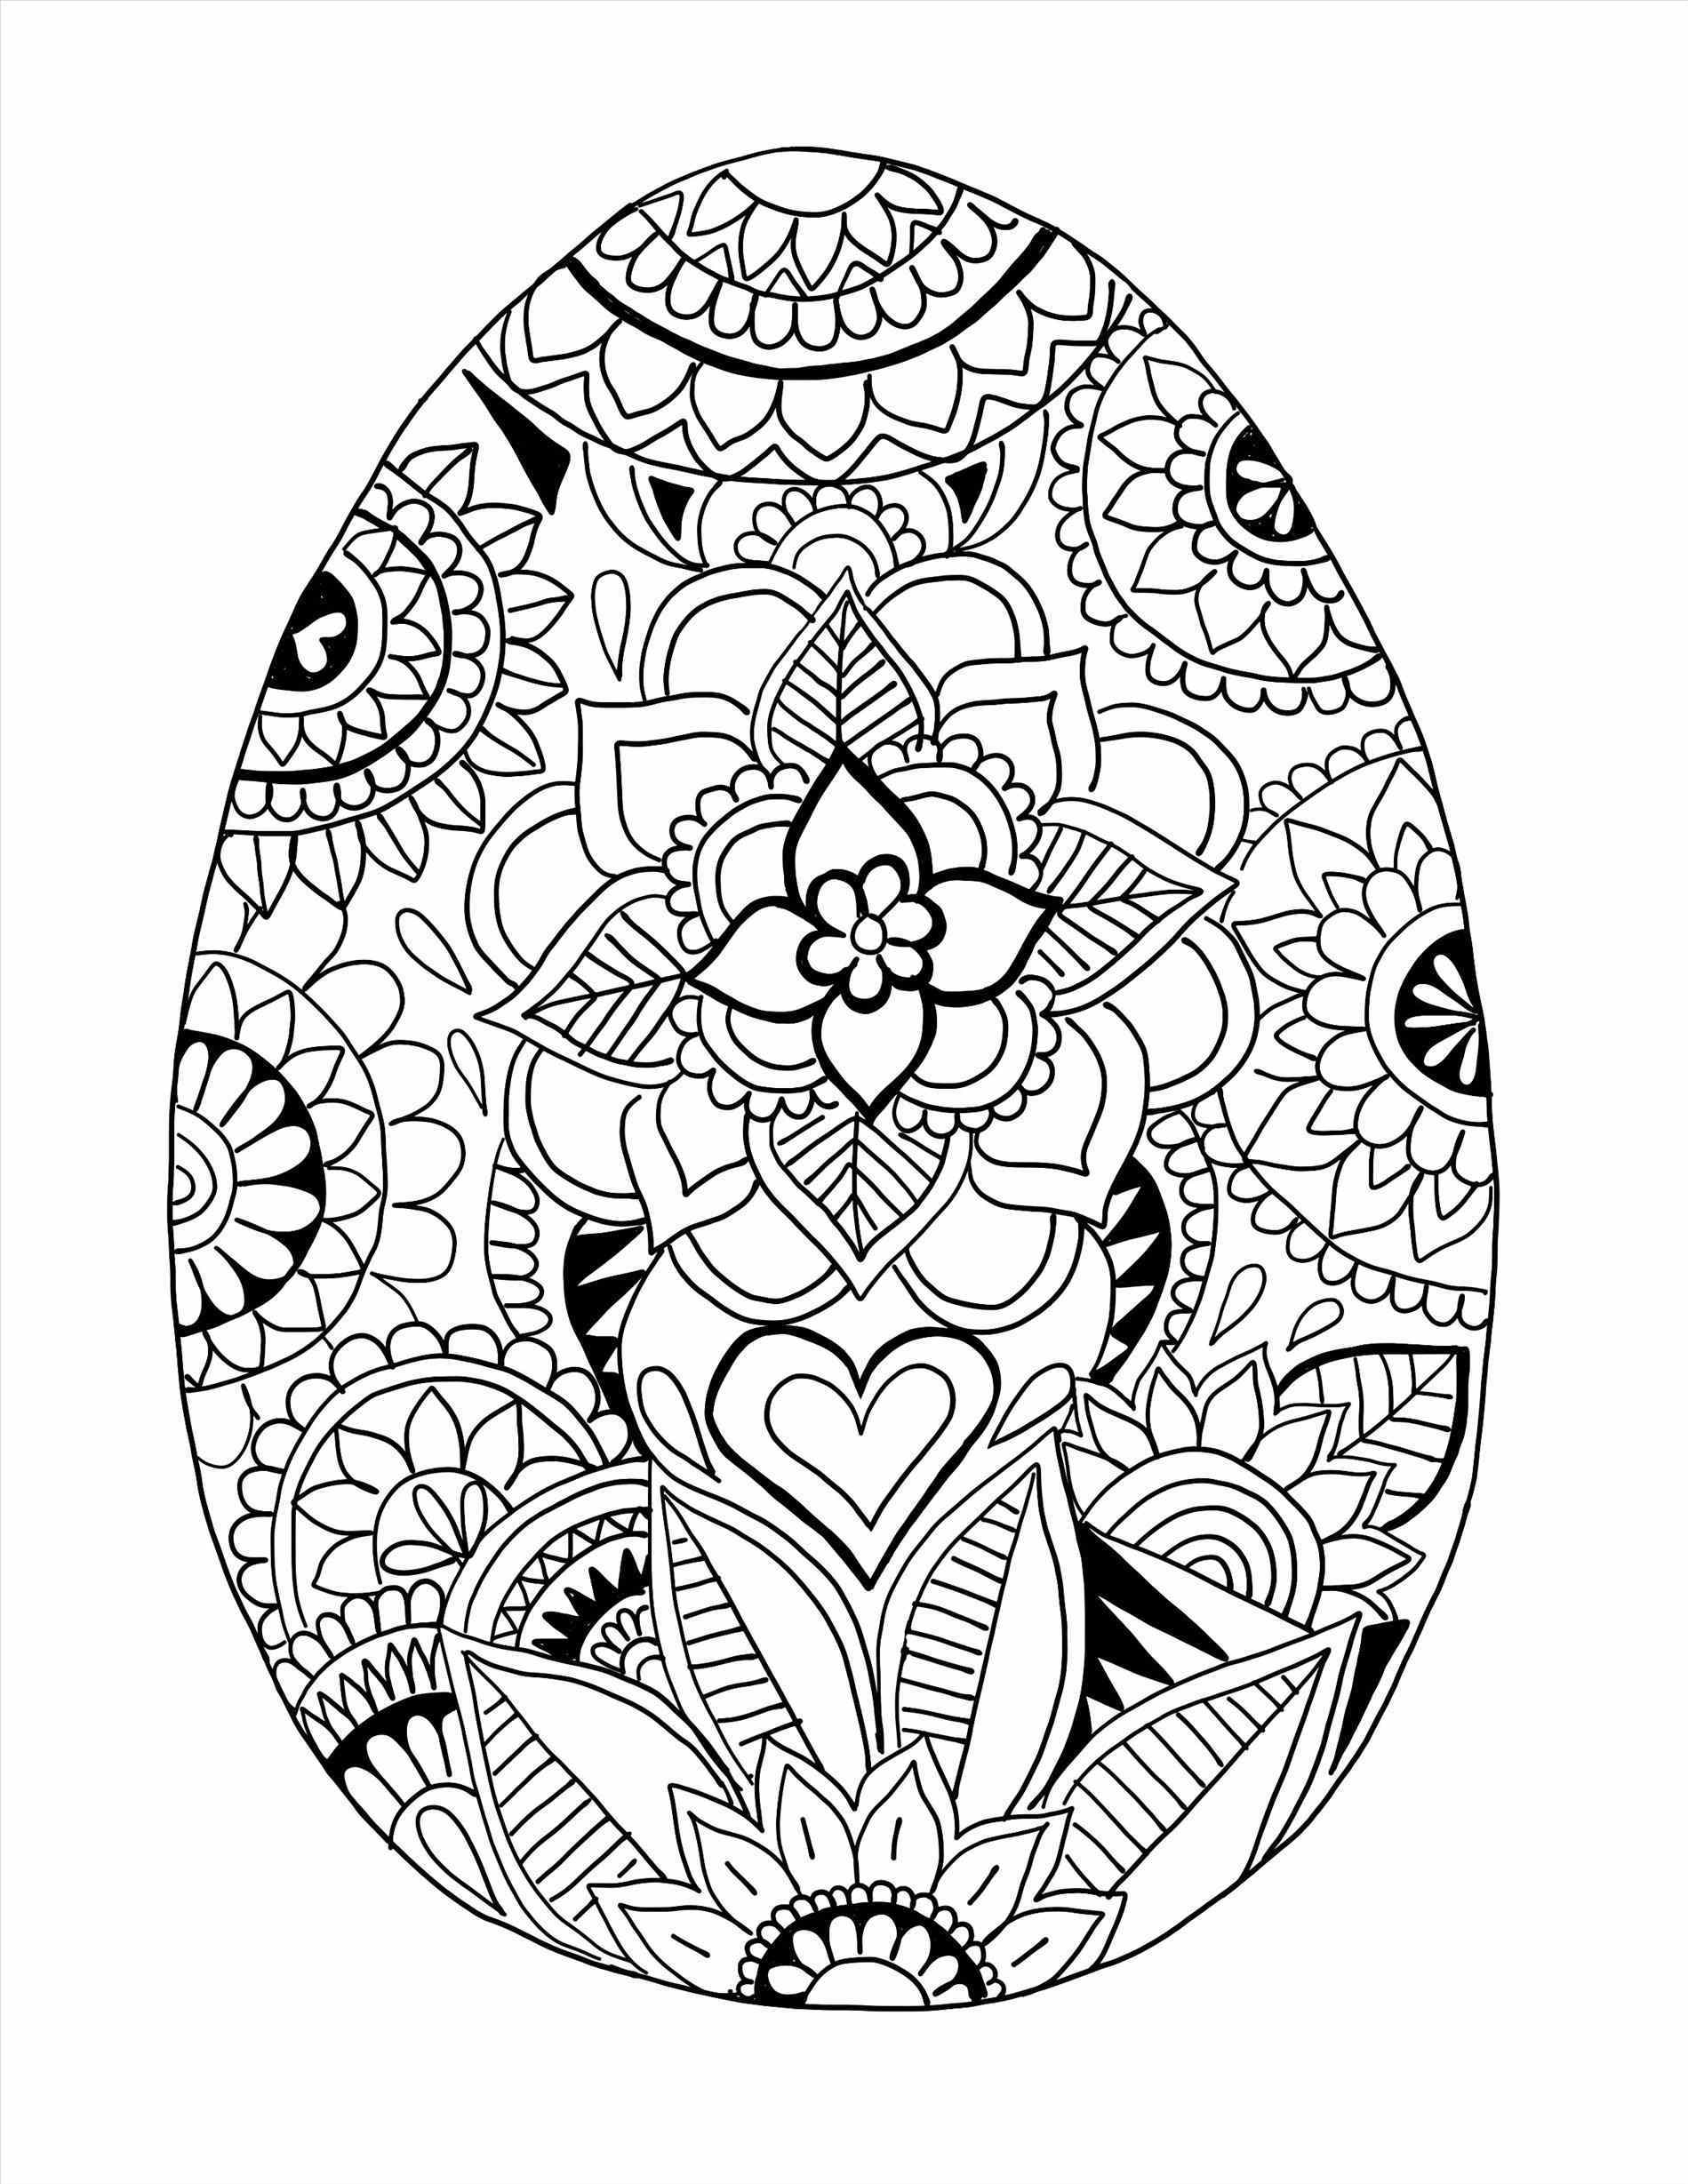 egg for colouring free printable easter egg coloring pages for kids egg colouring for